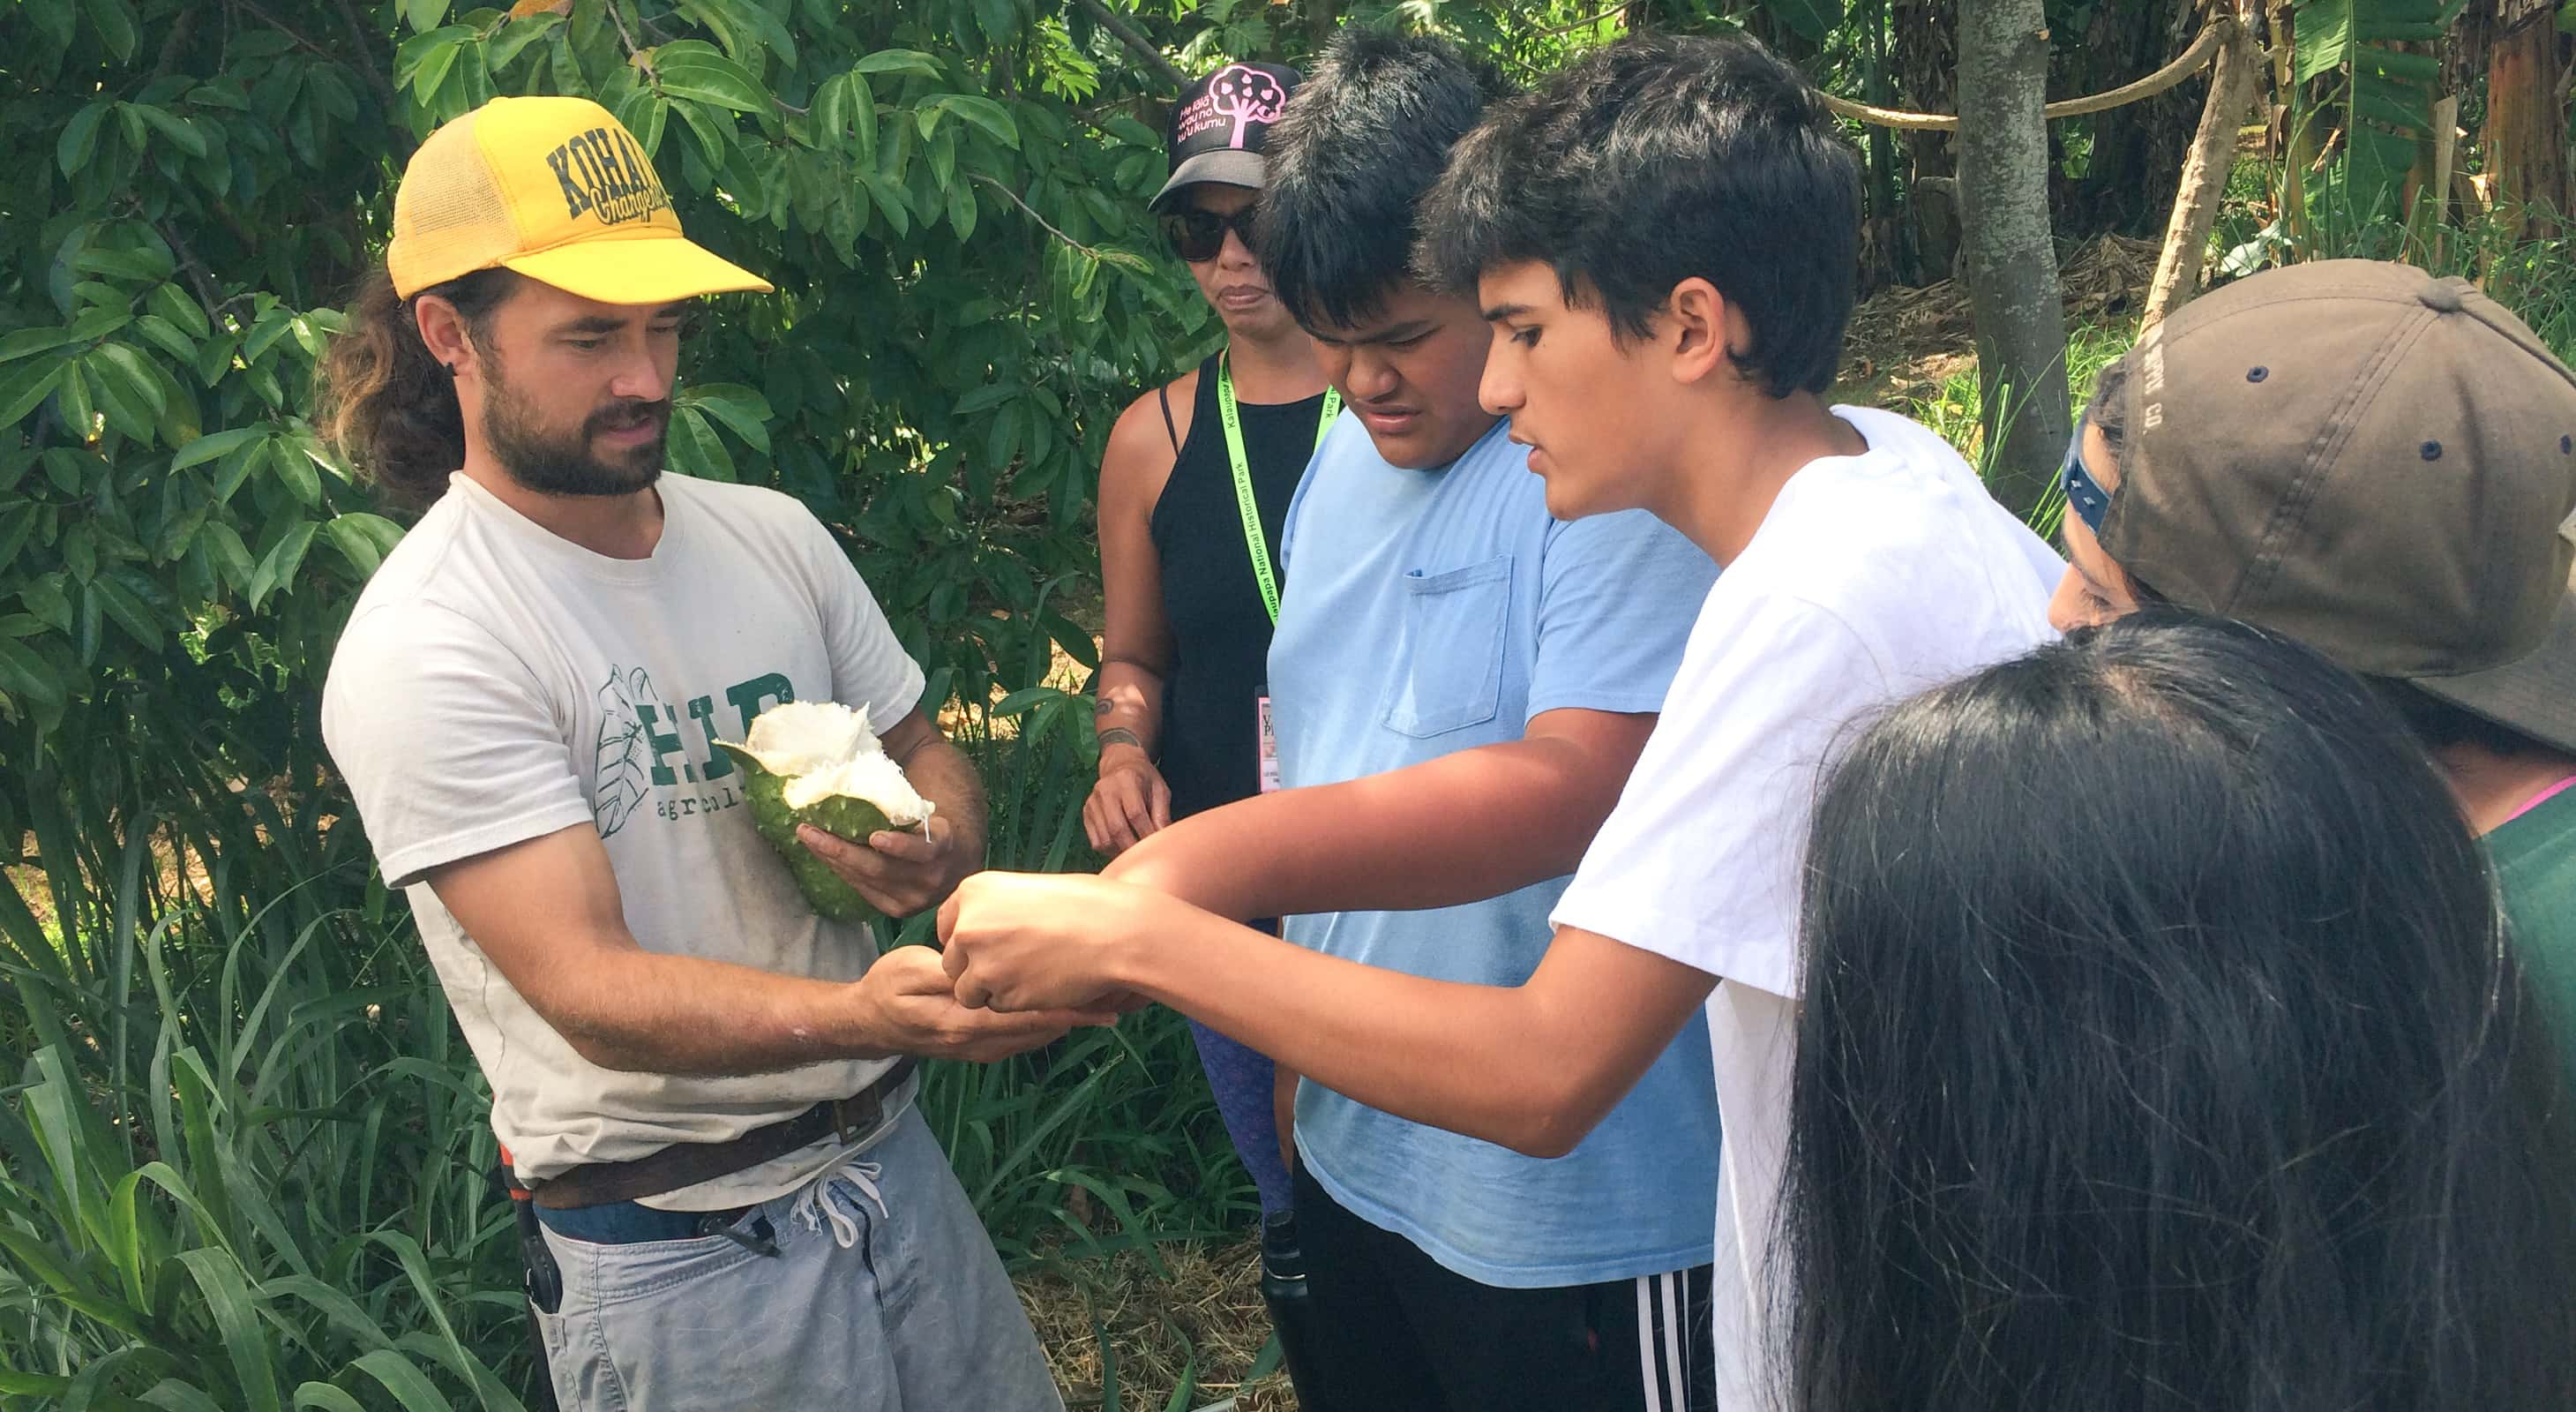 Summer immersion group at HIP Agriculture in Kohala